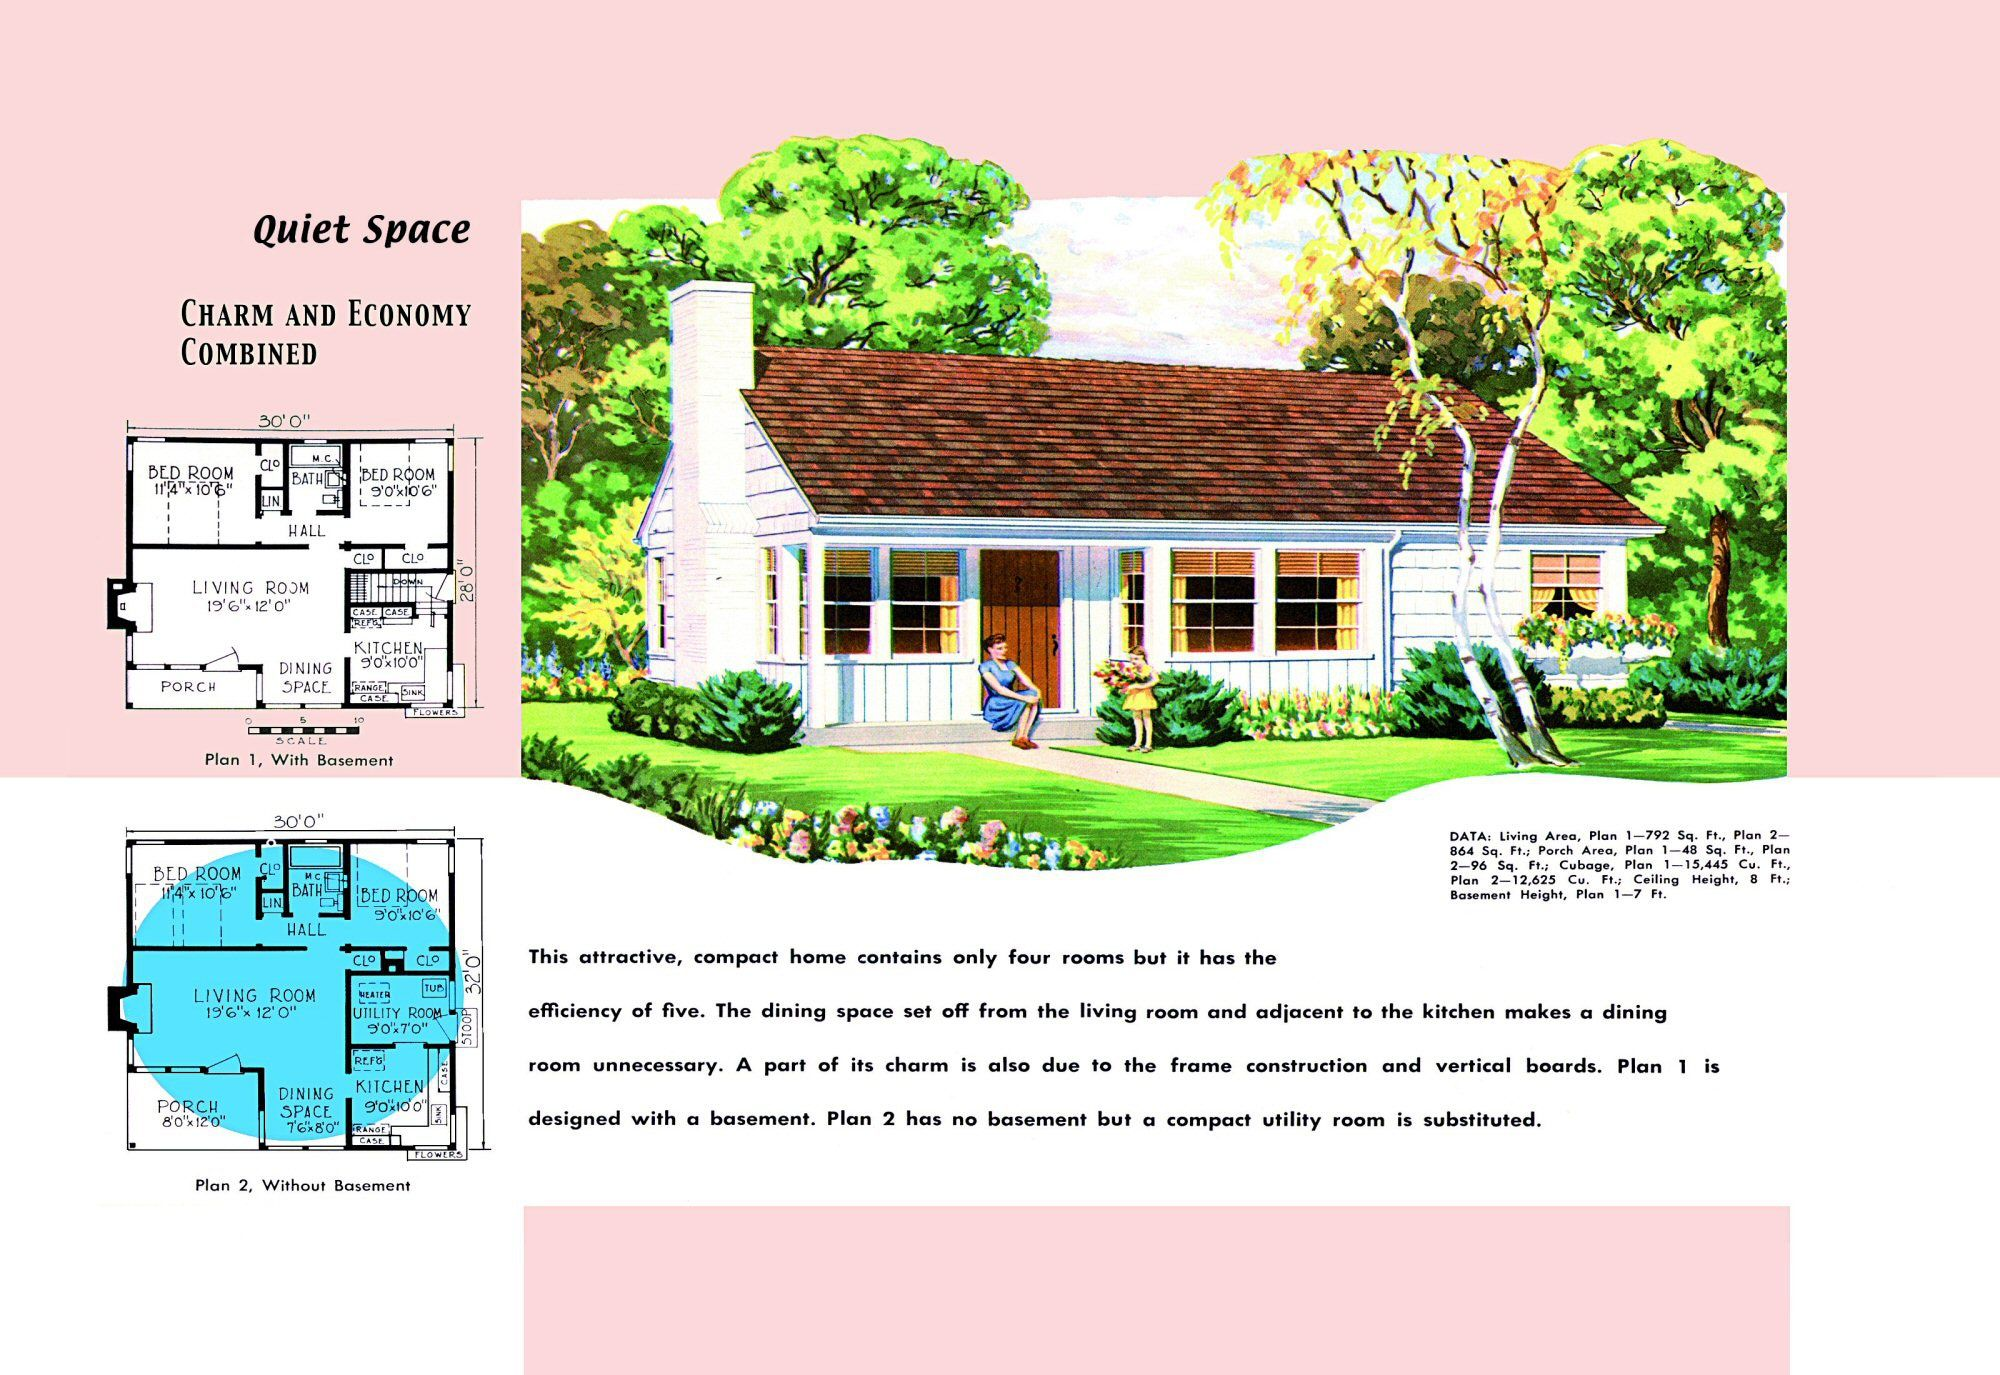 1940s And 50s House Plans Quiet Space Houses And Floor